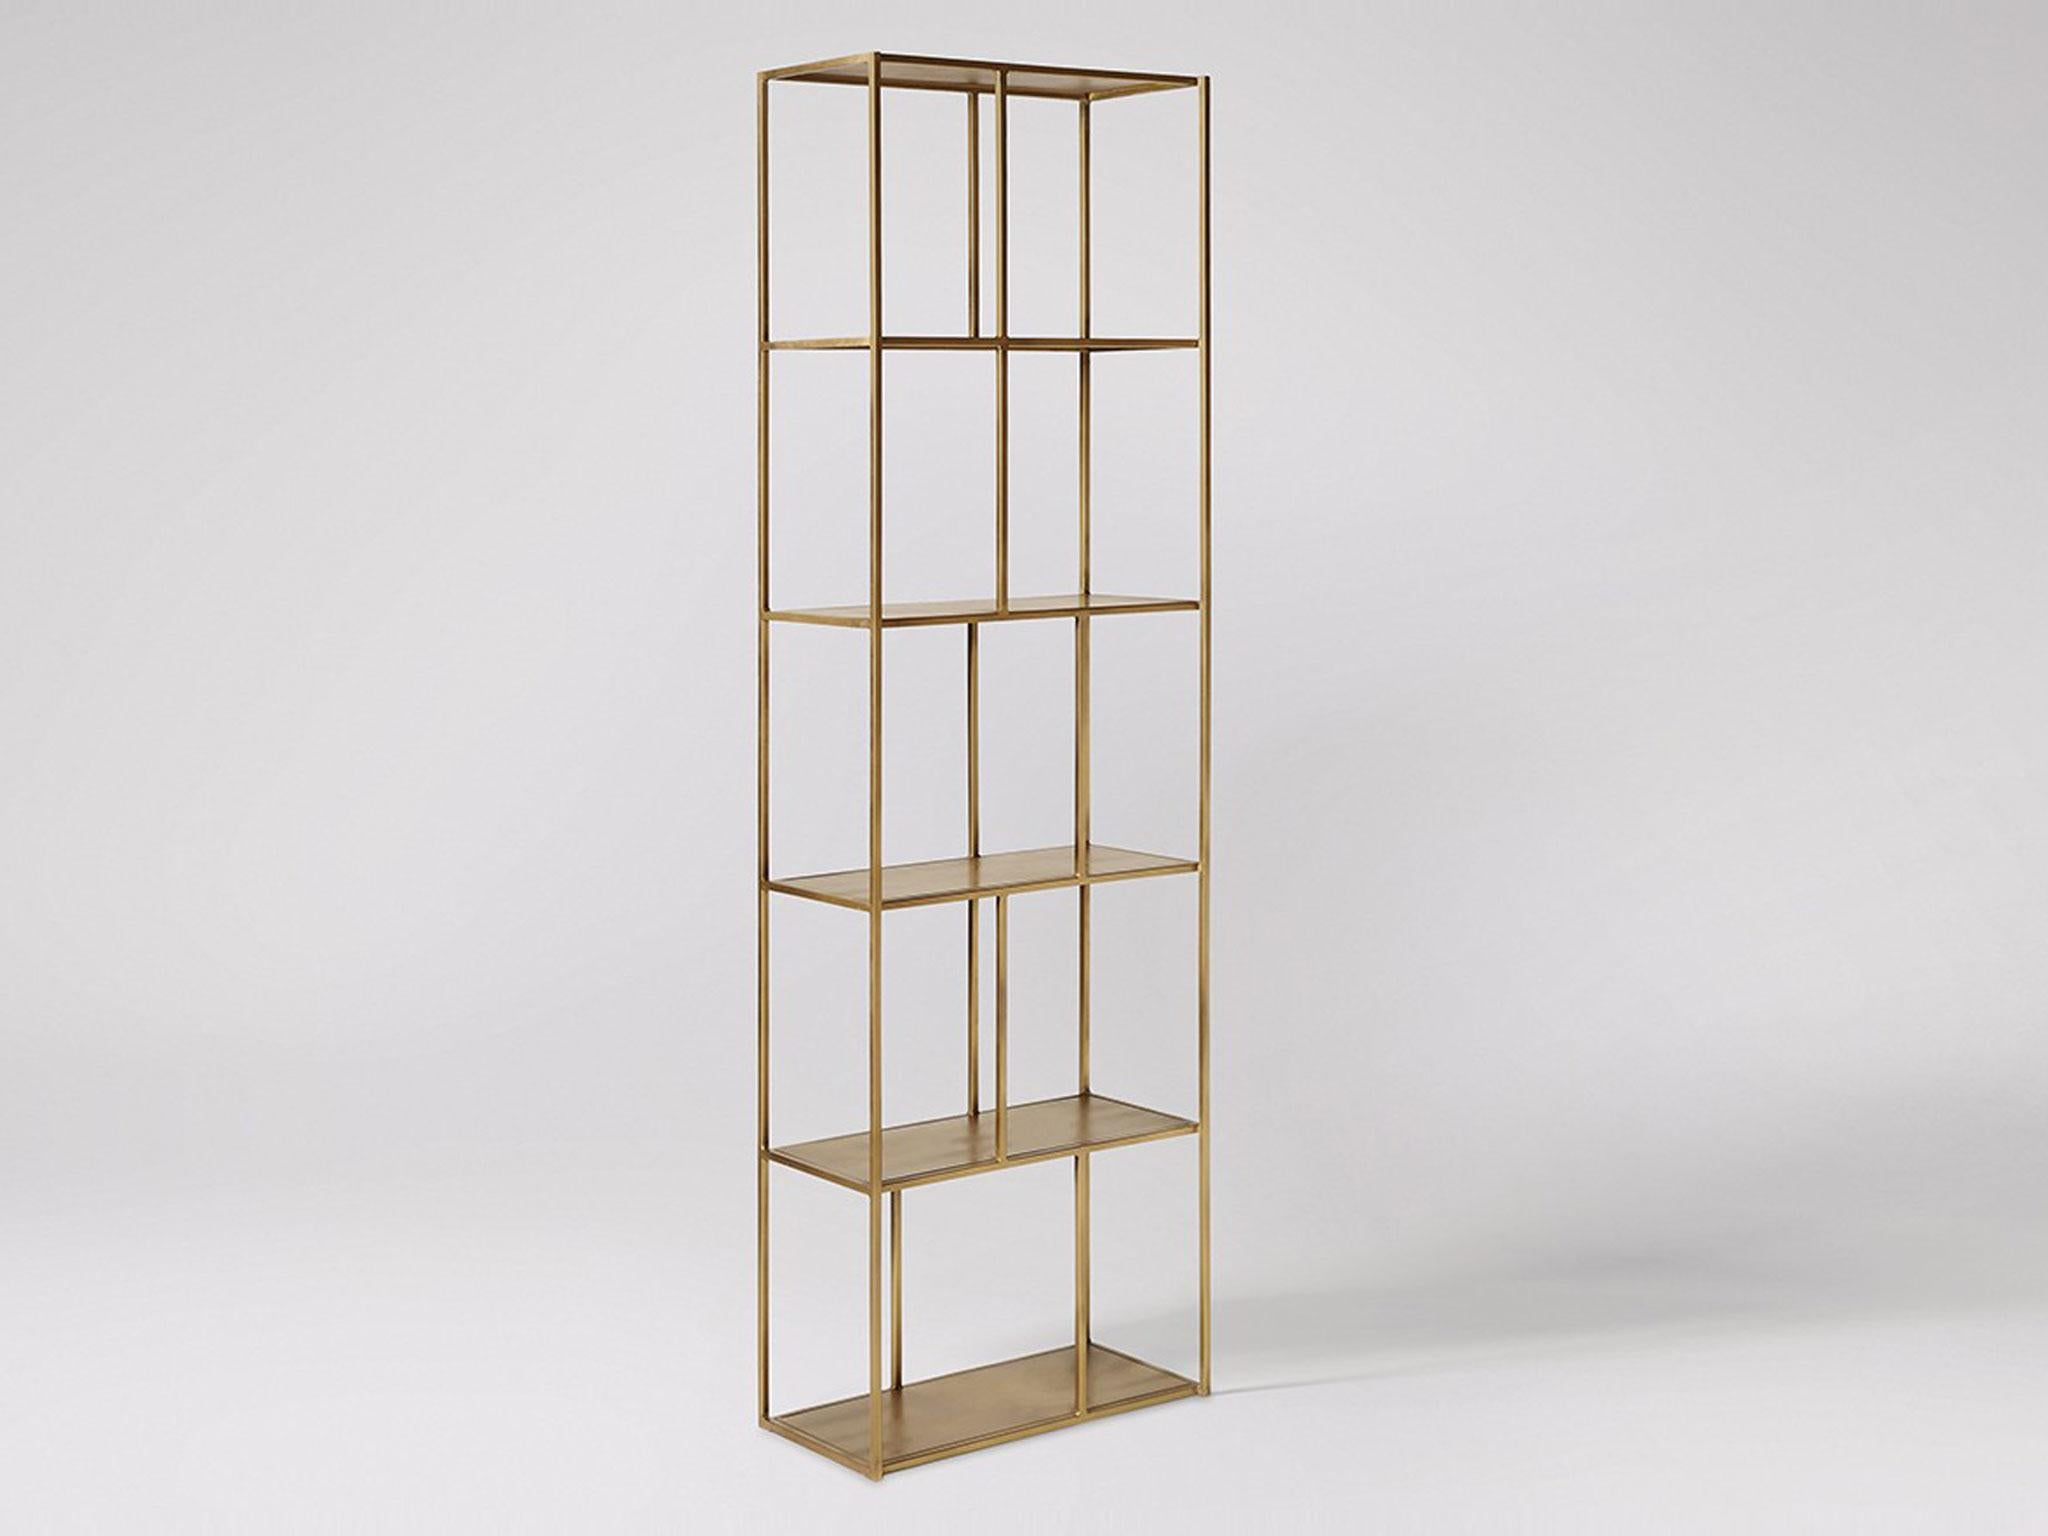 The Aero Shelf Is Made To Frame Books In Style With A Pleasing Geometric Design And Luxurious Finish Iron Bookcase Finished Top Bottom